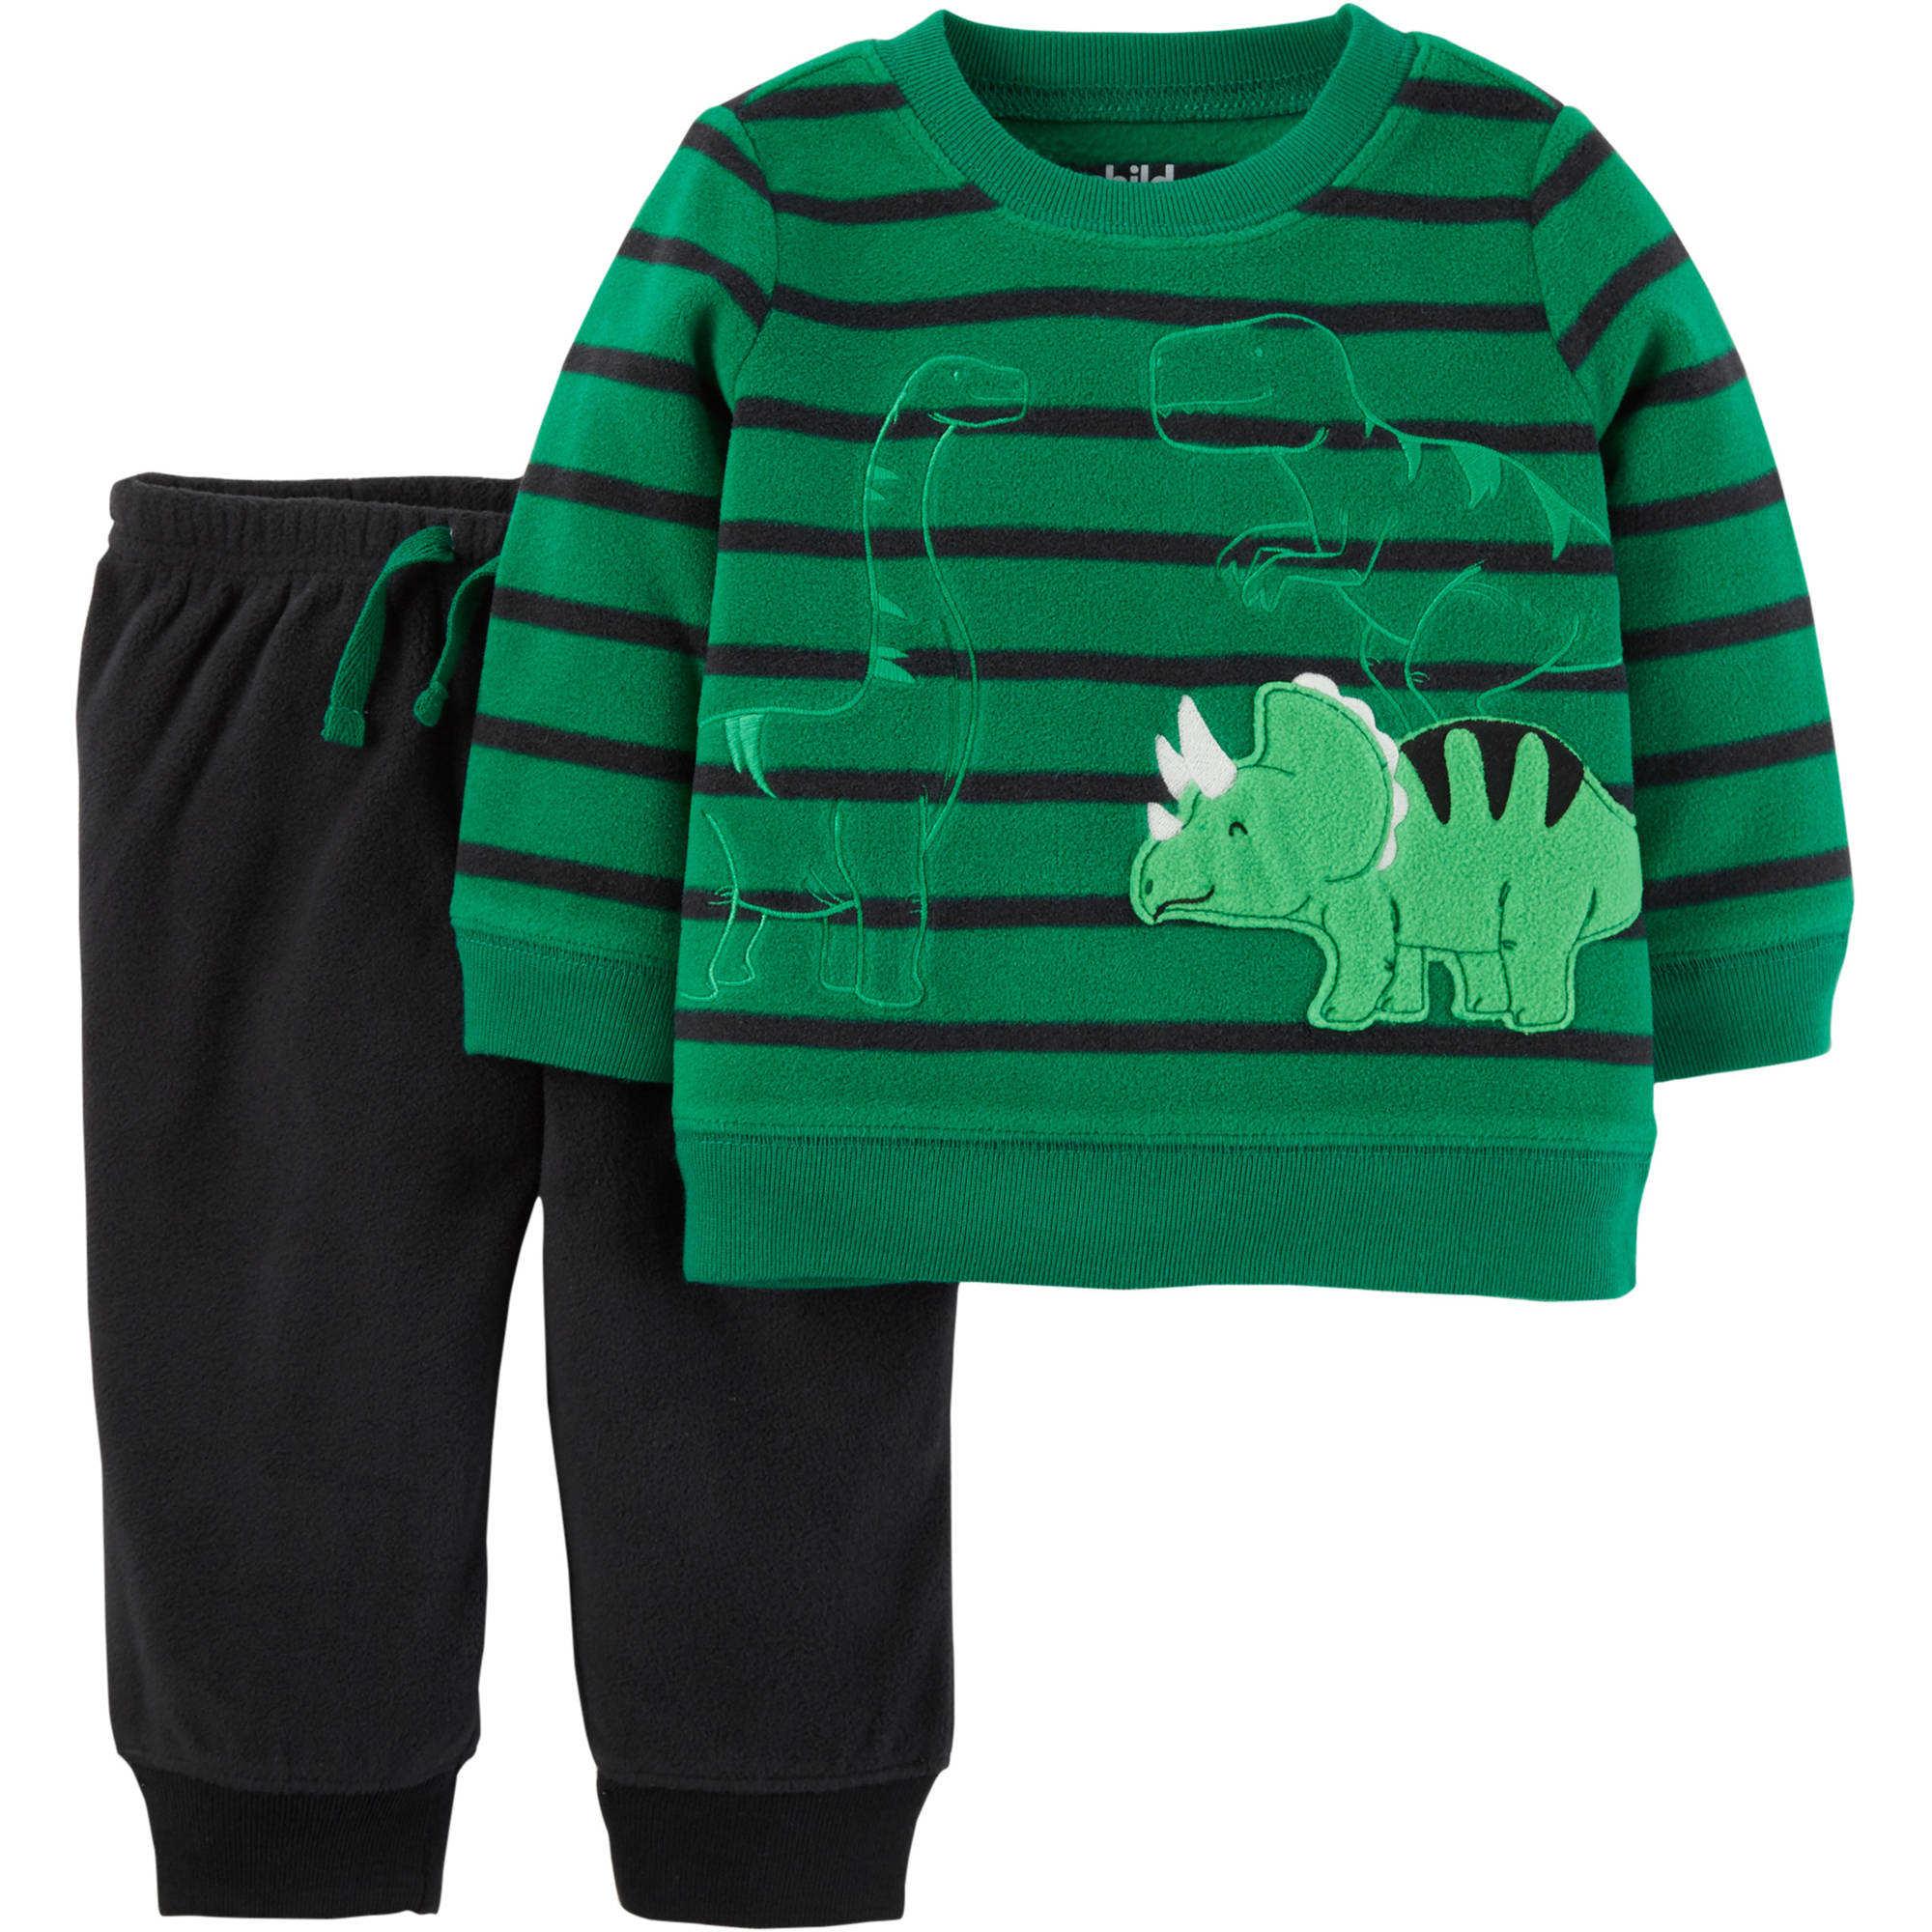 Child of Mine by Carter's Toddler Boy Microfleece Shirt and Pants, 2pc Outfit Set